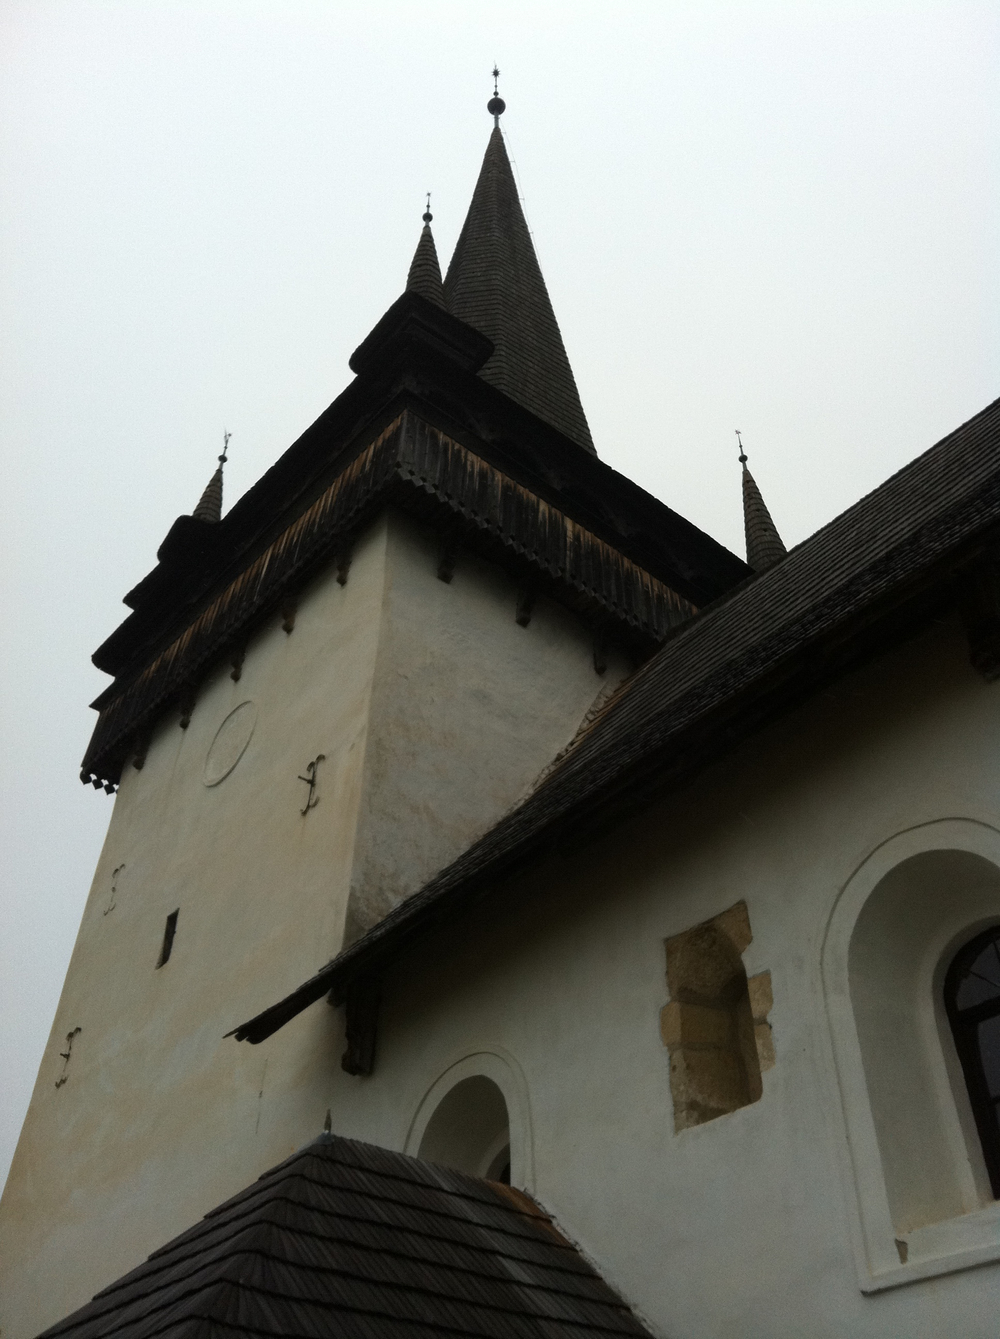 Steeple of the Reformed Church in   Văleni / Magyarvalkó.